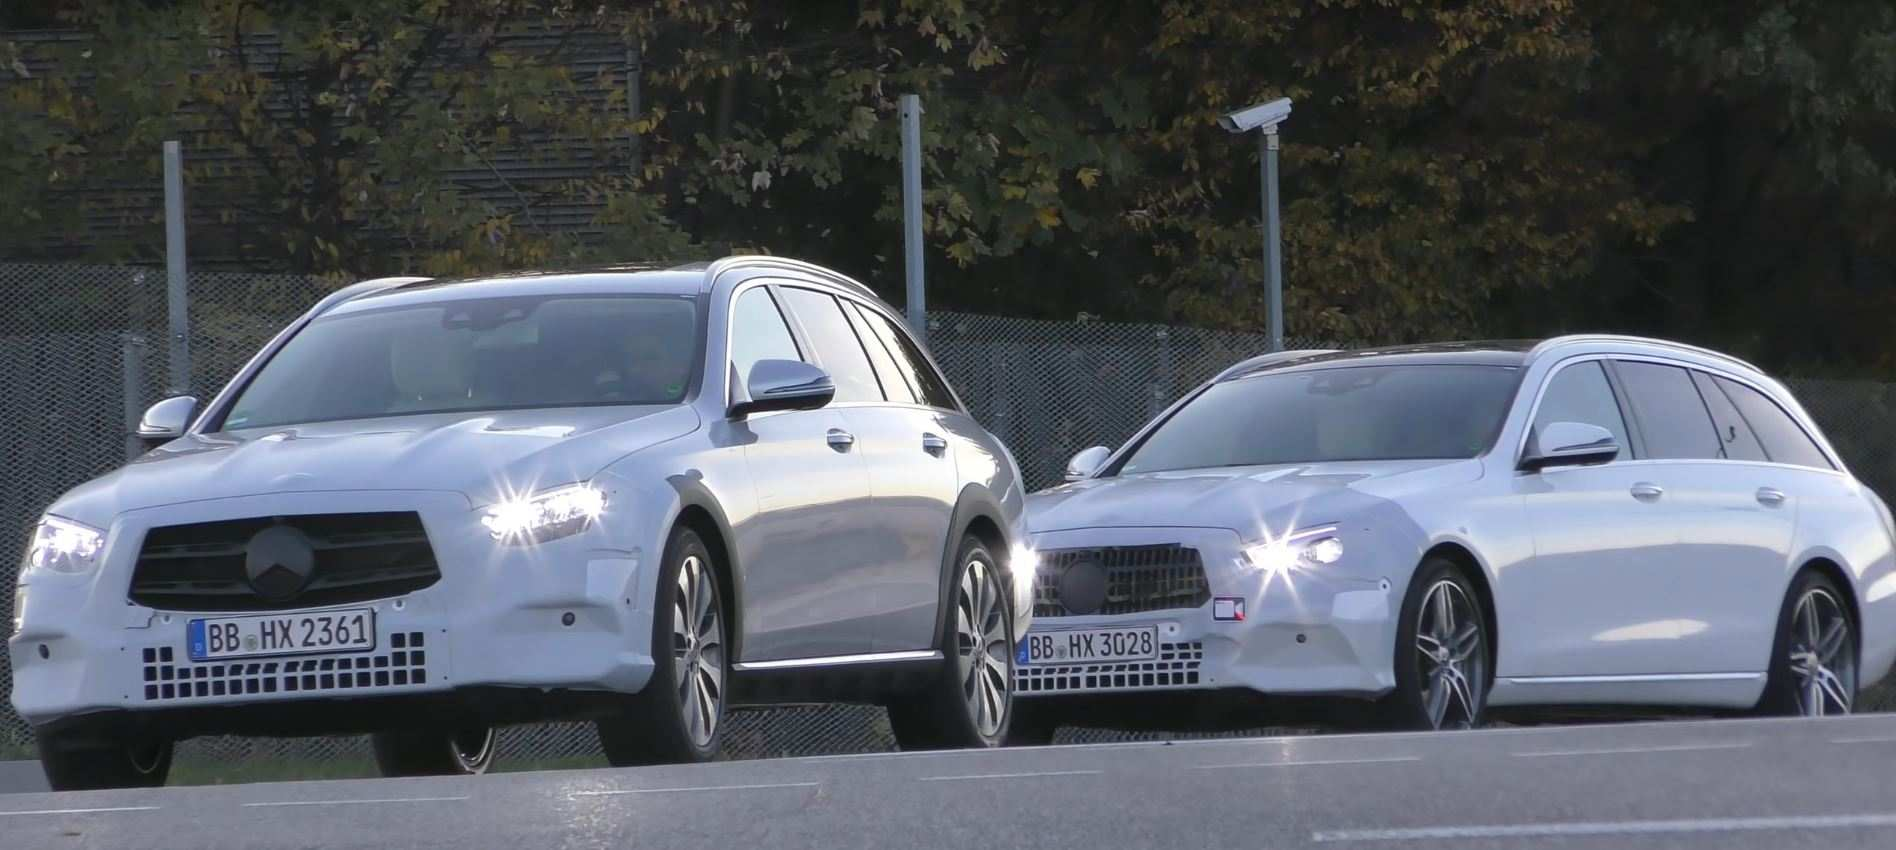 37 The 2020 The Spy Shots Mercedes E Class Pictures by 2020 The Spy Shots Mercedes E Class